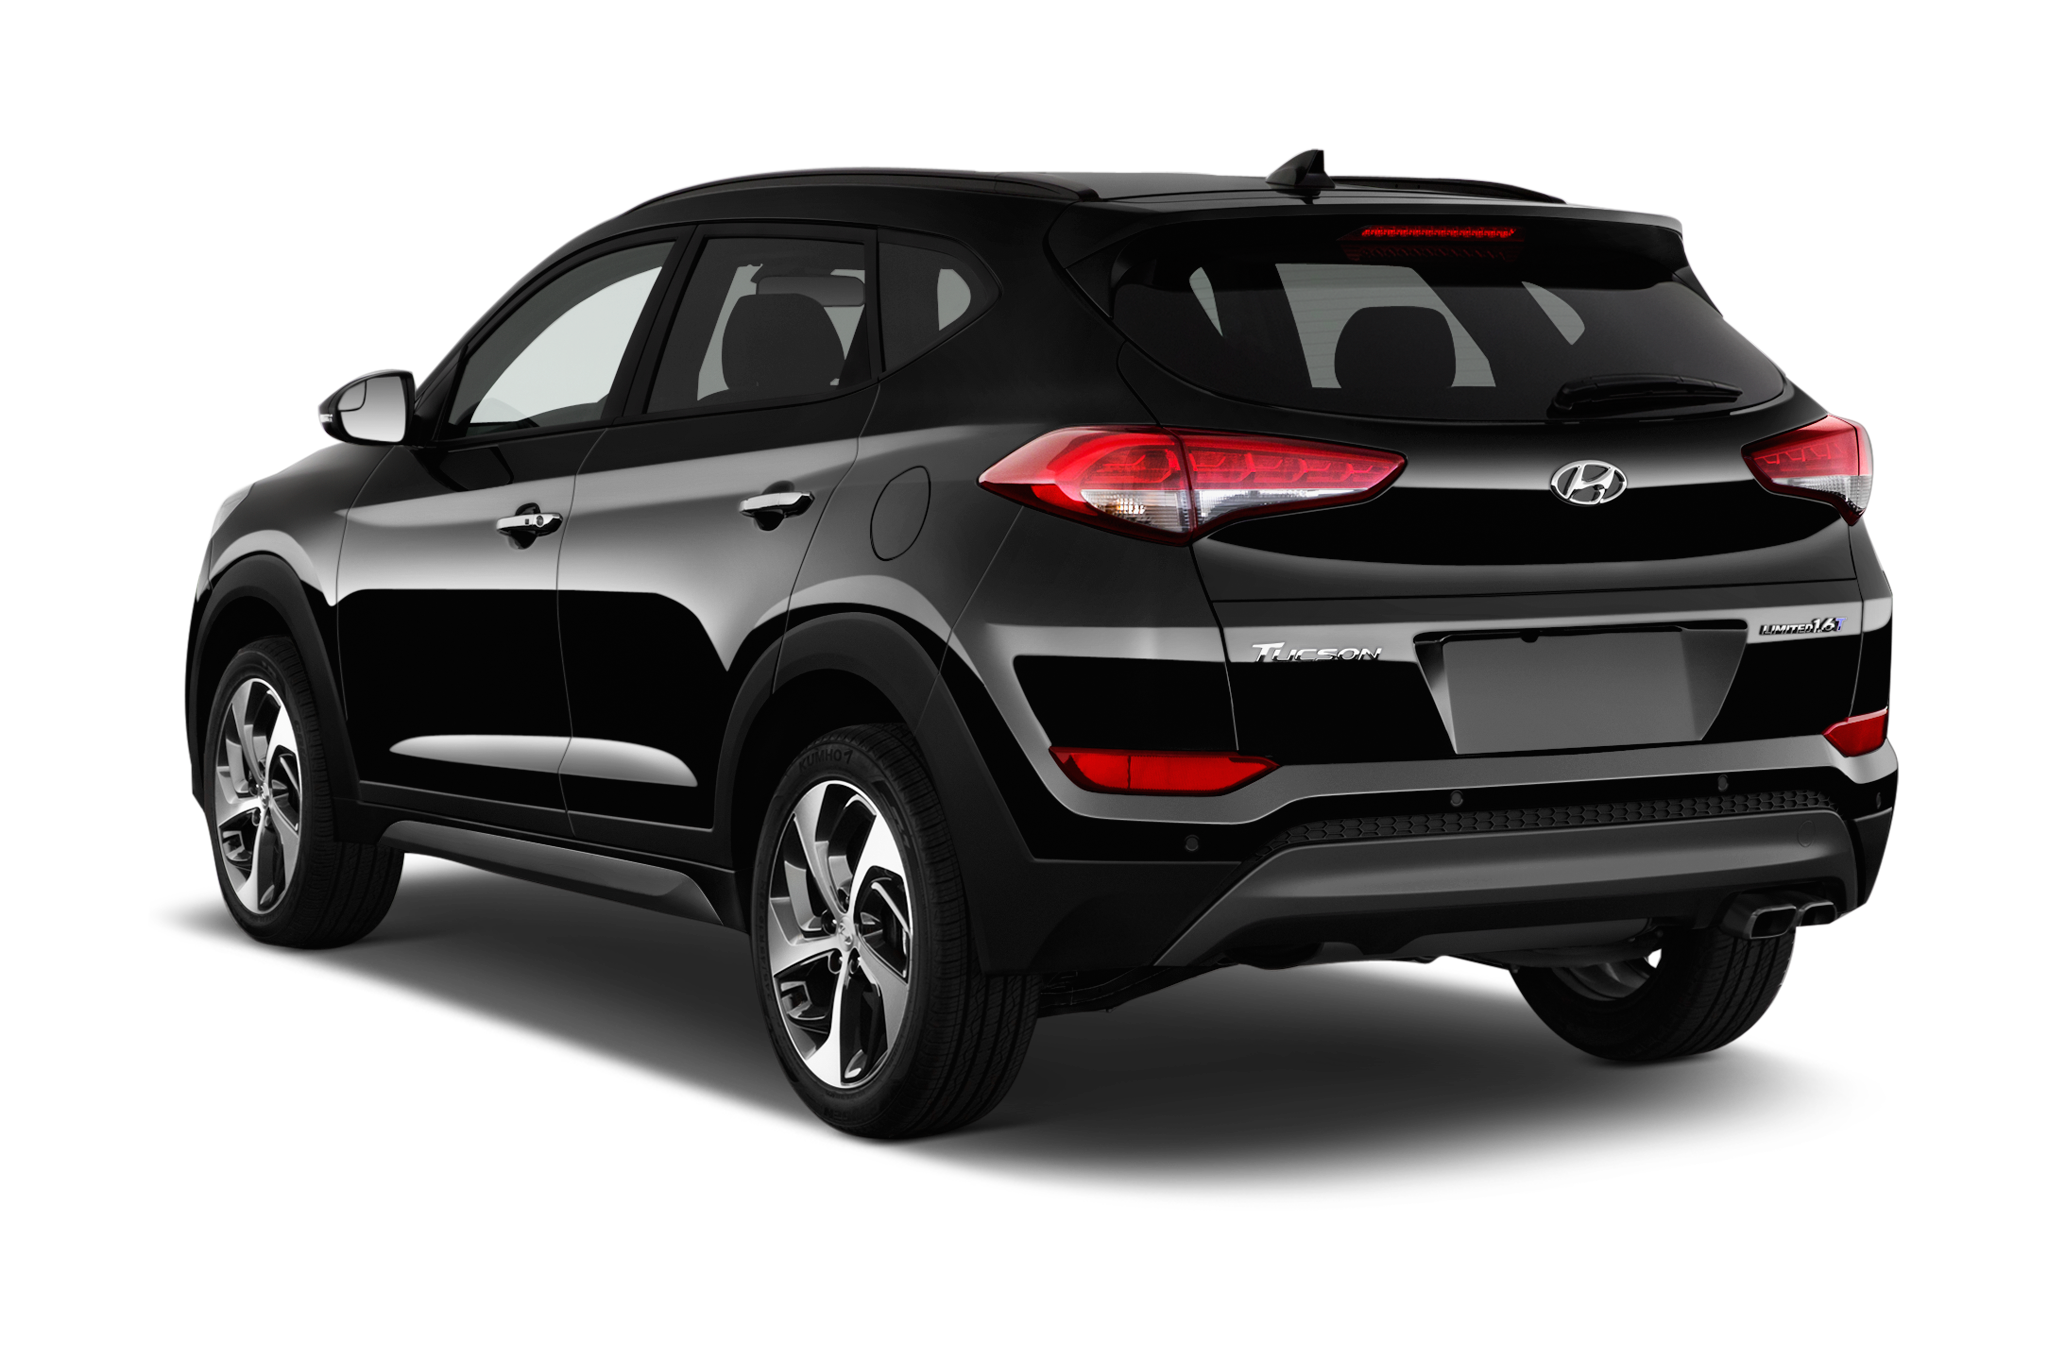 hyundai teams up with vaccar for extreme tucson sport sema. Black Bedroom Furniture Sets. Home Design Ideas